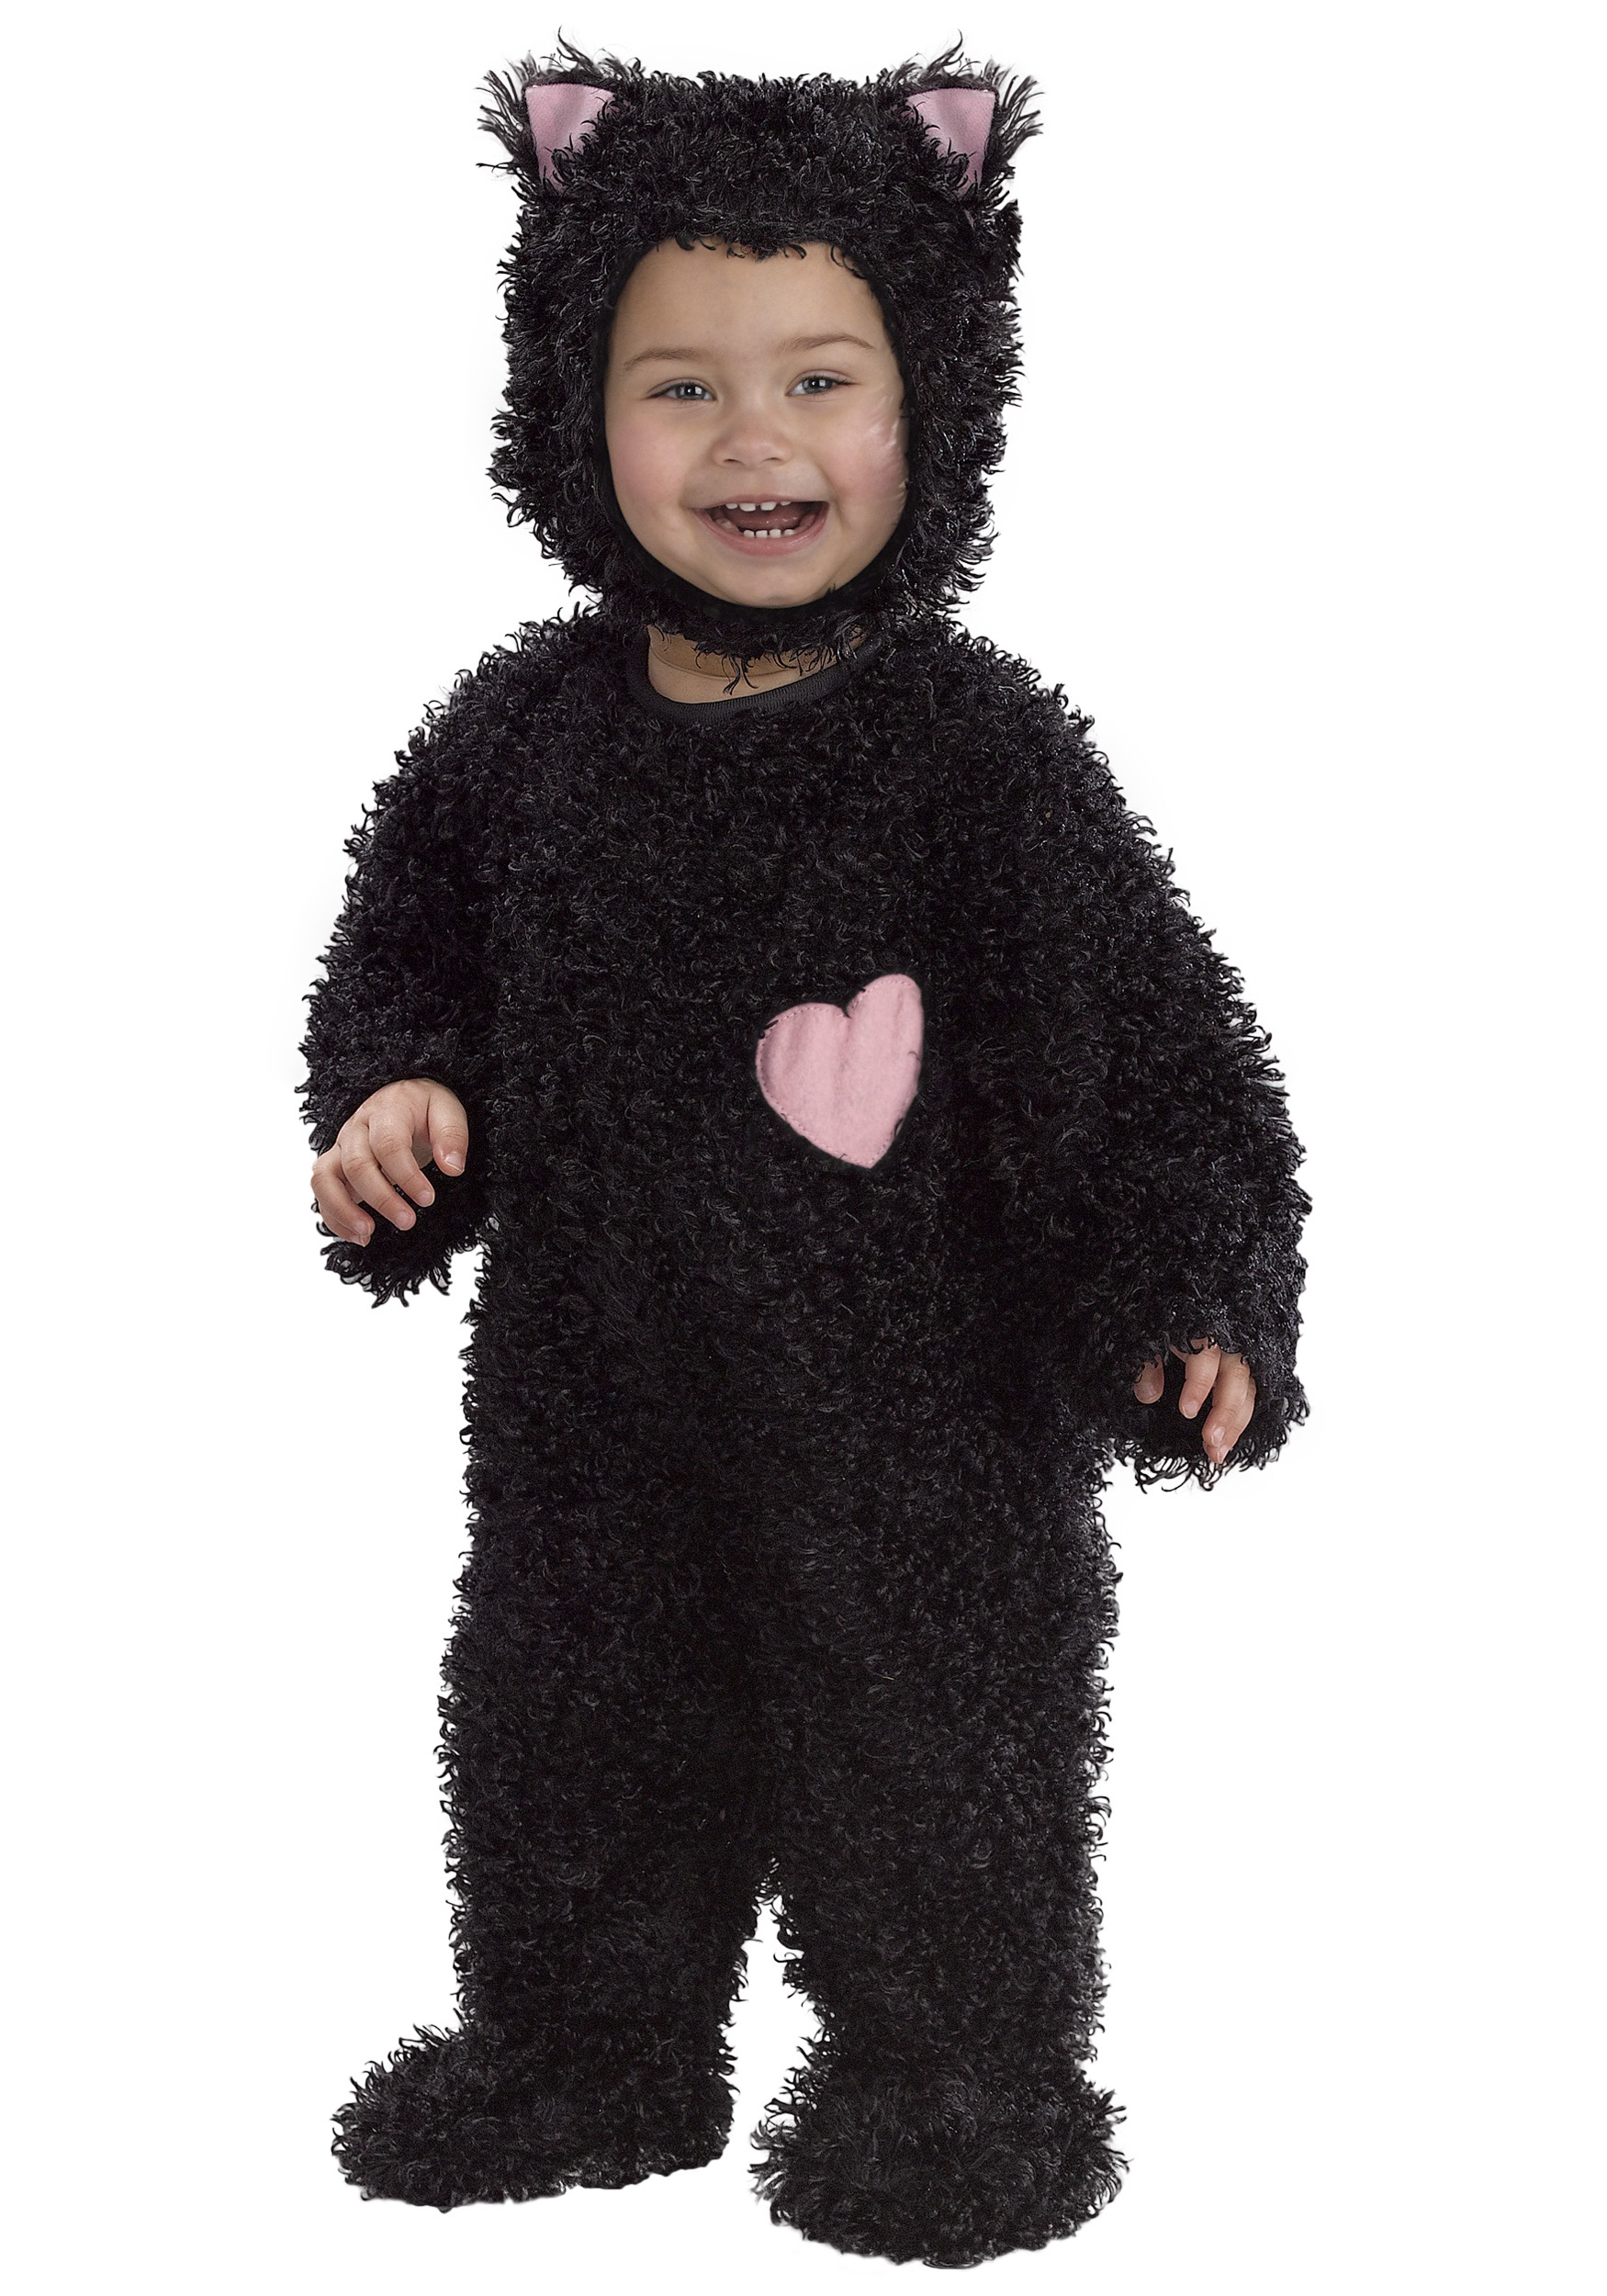 Toddler Scruffy Black Kitty Costume  sc 1 st  Halloween Costumes & Toddler Scruffy Black Kitty Costume - Halloween Costumes